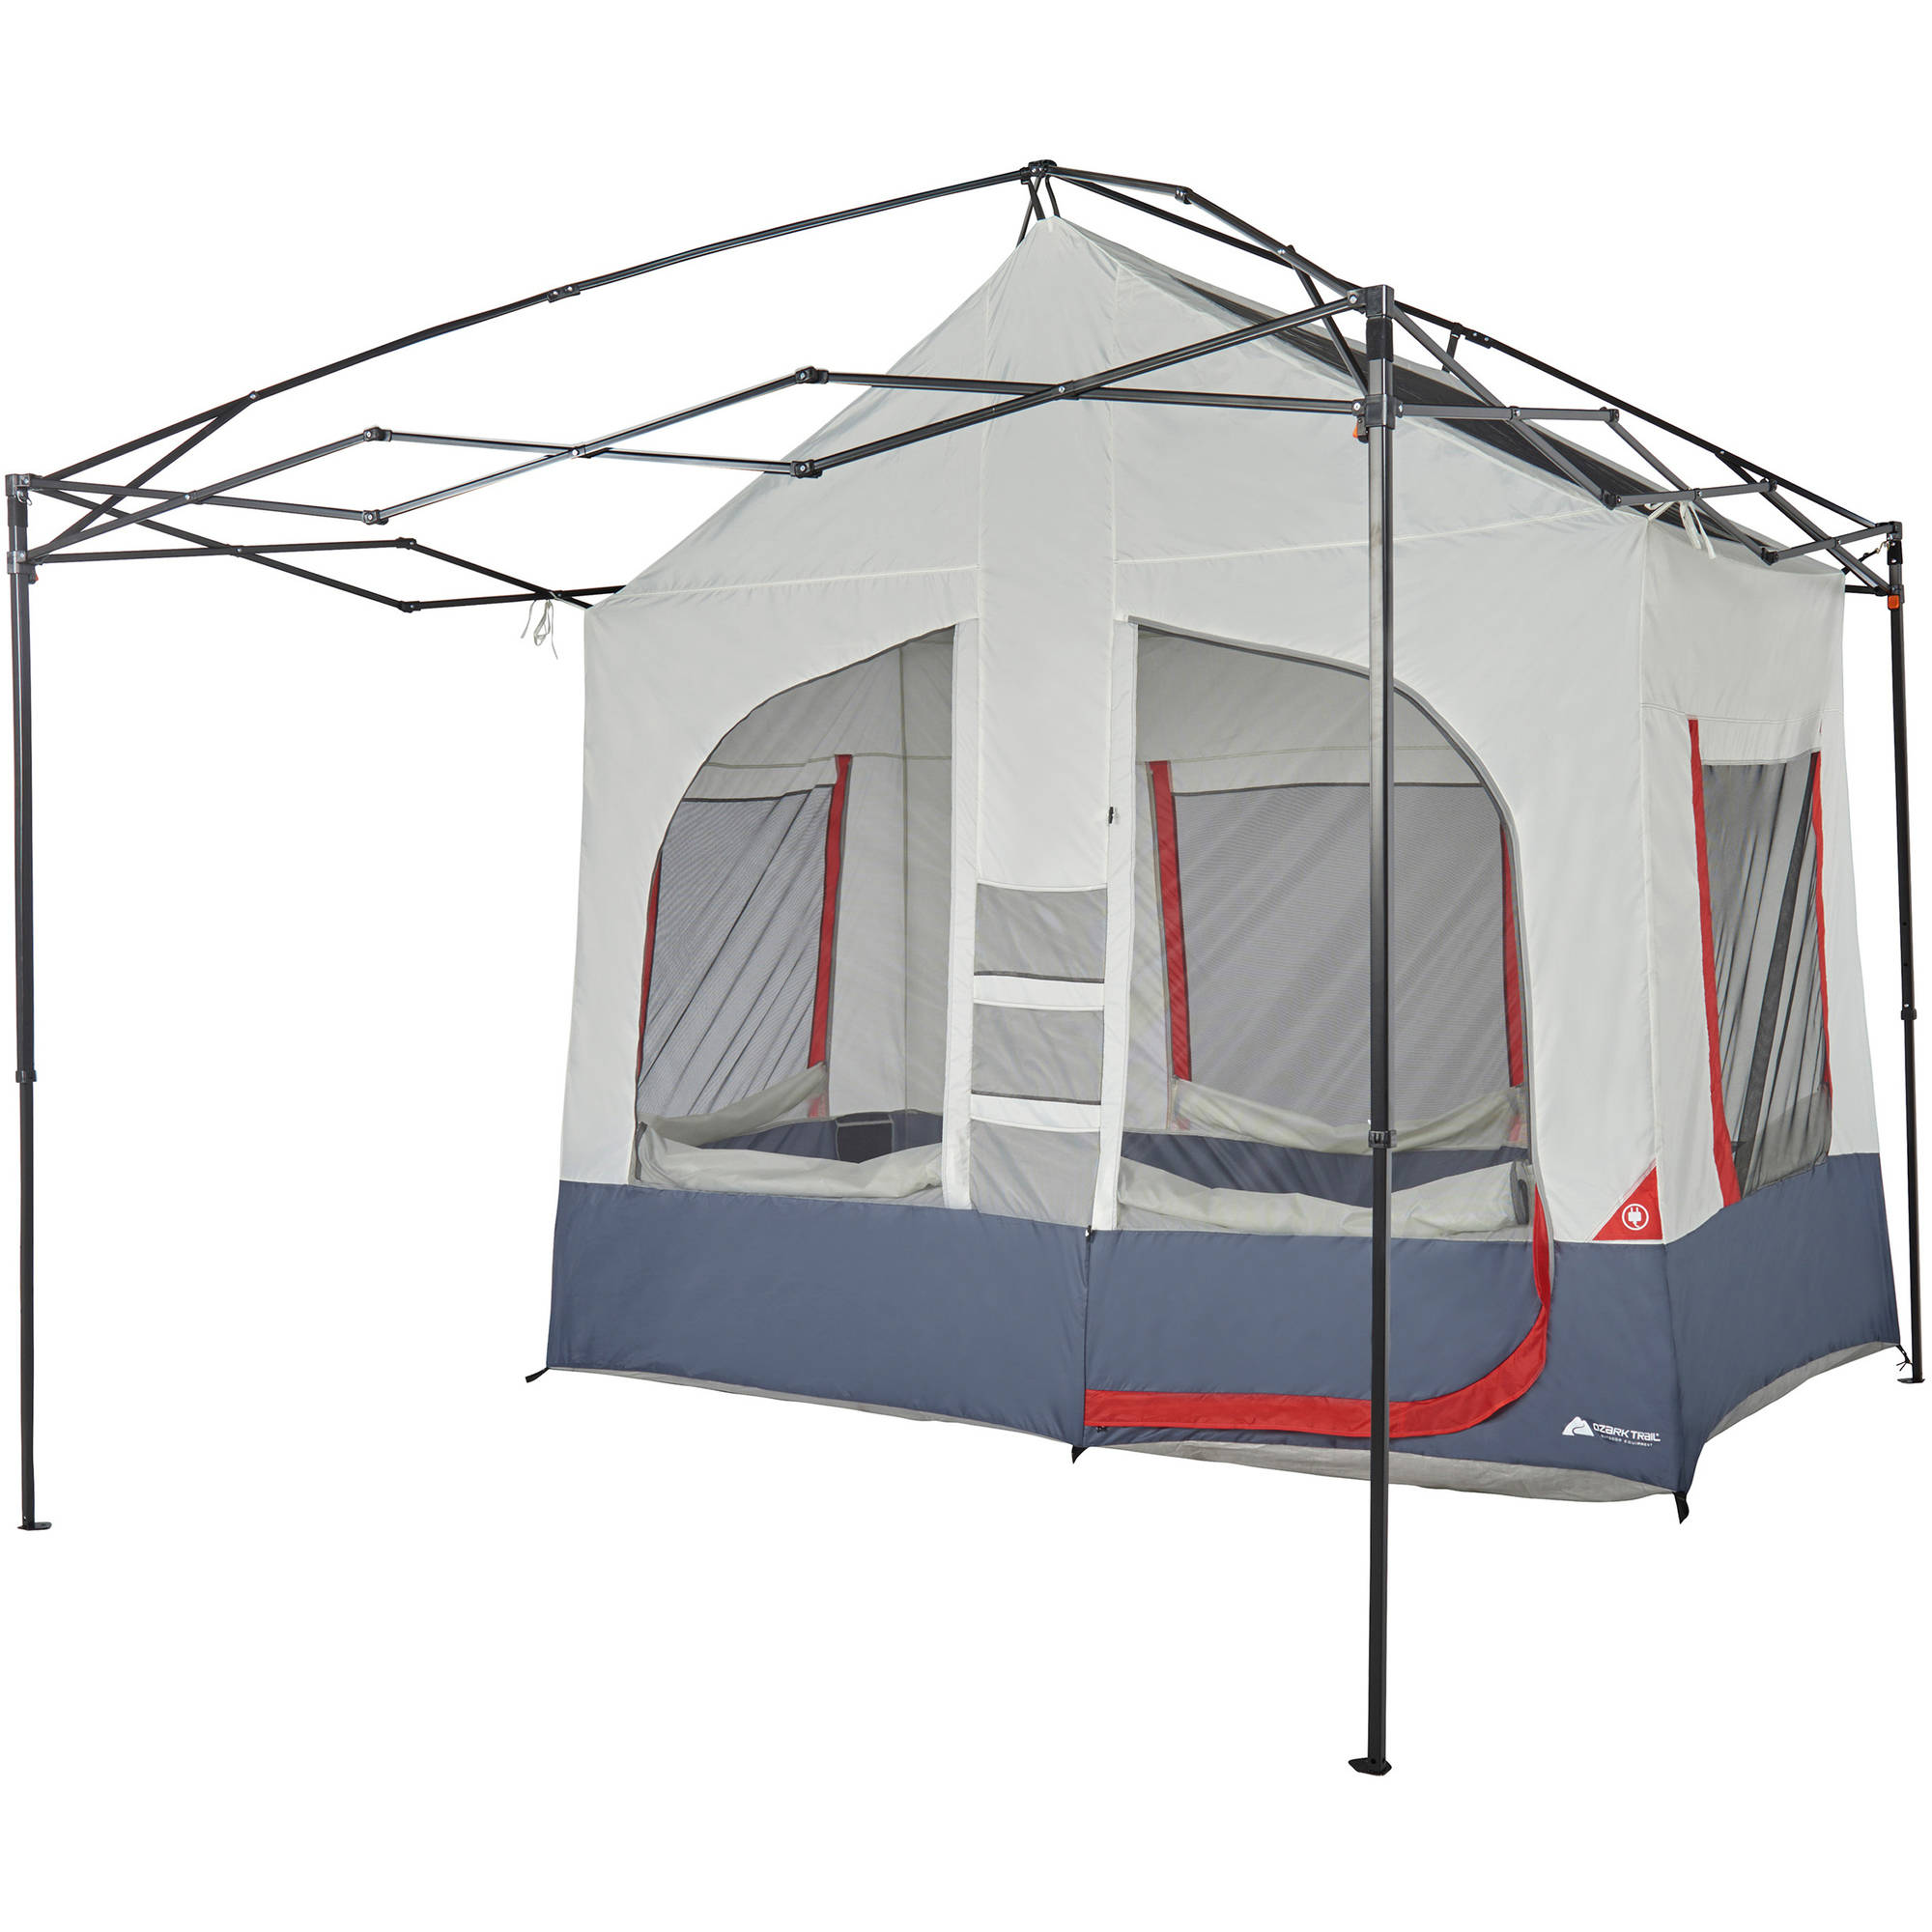 Ozark Trail 3-Person Connect Tent  sc 1 st  Walmart & Ozark Trail 3-Person Connect Tent - Walmart.com